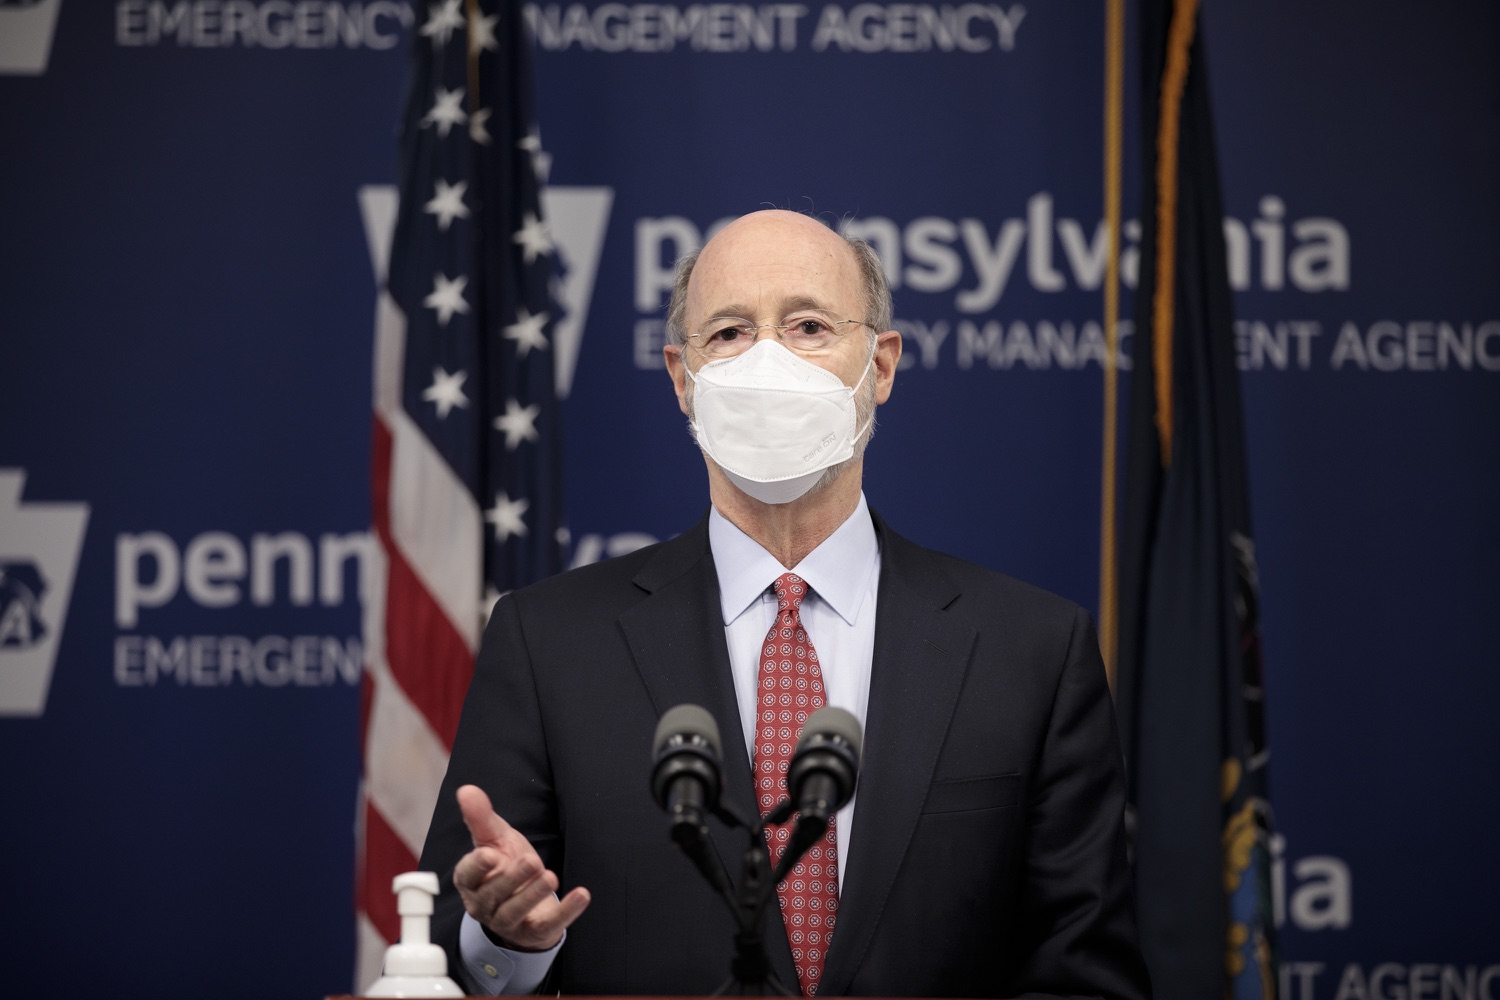 "<a href=""https://filesource.wostreaming.net/commonwealthofpa/photo/18535_gov_nellie_bly_dz_11.jpg"" target=""_blank"">⇣ Download Photo<br></a>Pennsylvania Governor Tom Wolf speaking at the press conference.  Governor Tom Wolf wants to bet on 44,000 students to help them earn a college degree while graduating with less debt and building successful lives in Pennsylvania. Today, the governor held a press conference to discuss how his historic Nellie Bly Scholarship Program would provide need-based financial assistance for students at 14 universities in the states system. Harrisburg, PA  February 17, 2021"